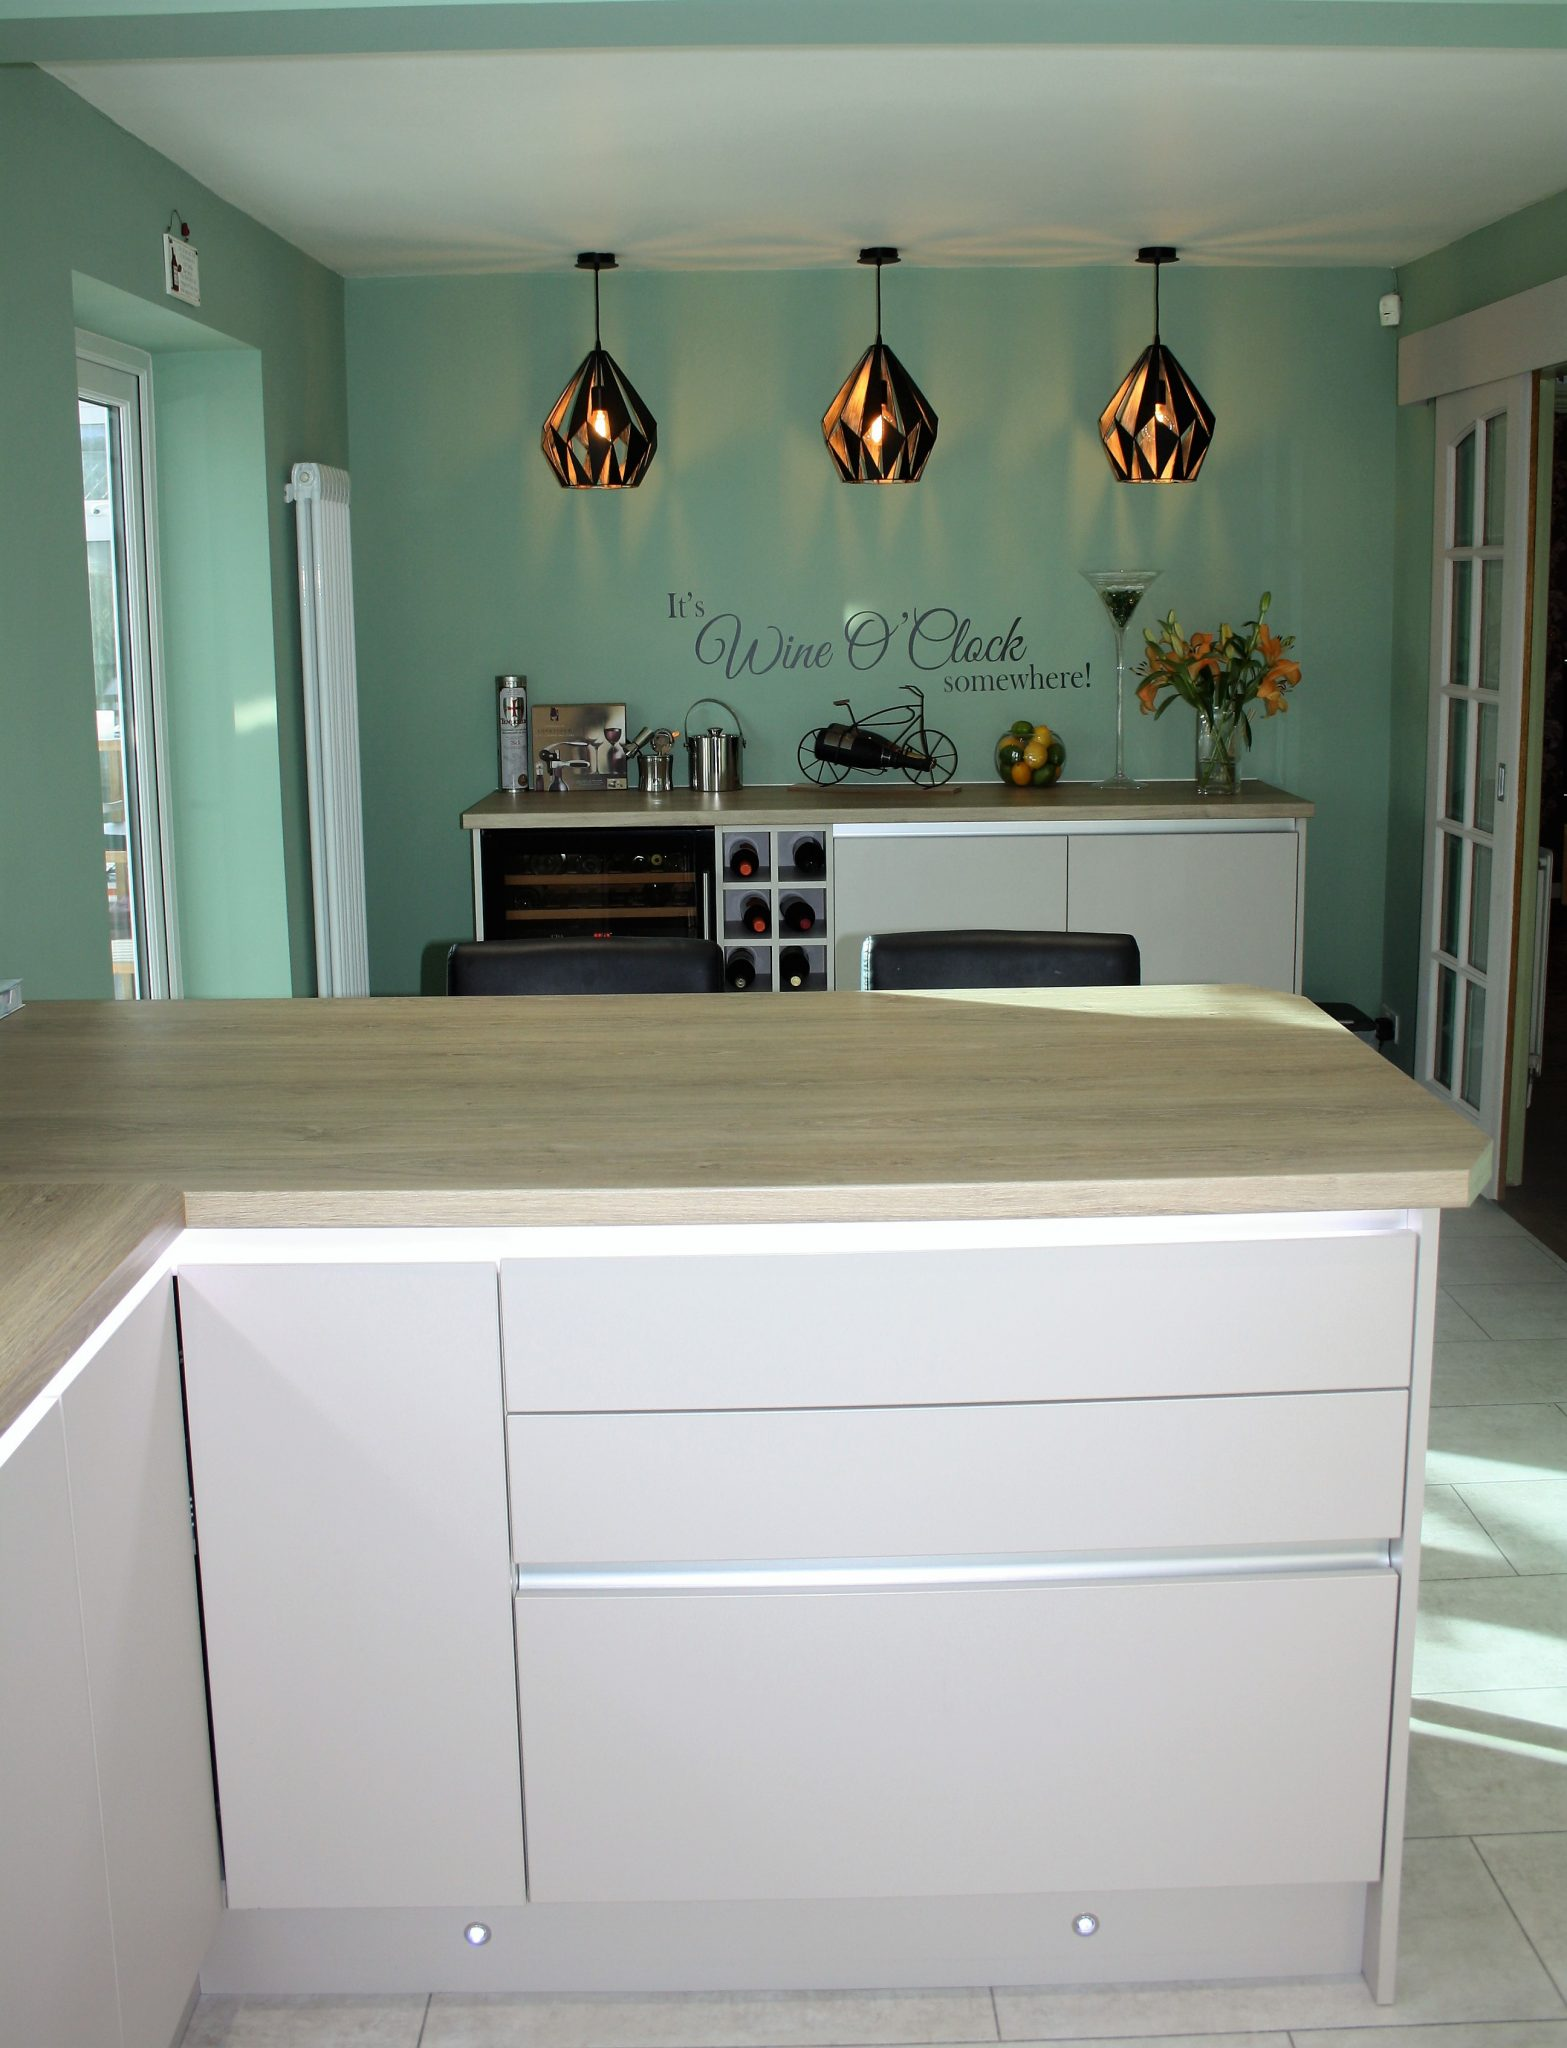 Sideboard/Bar Area with Wine Cooler